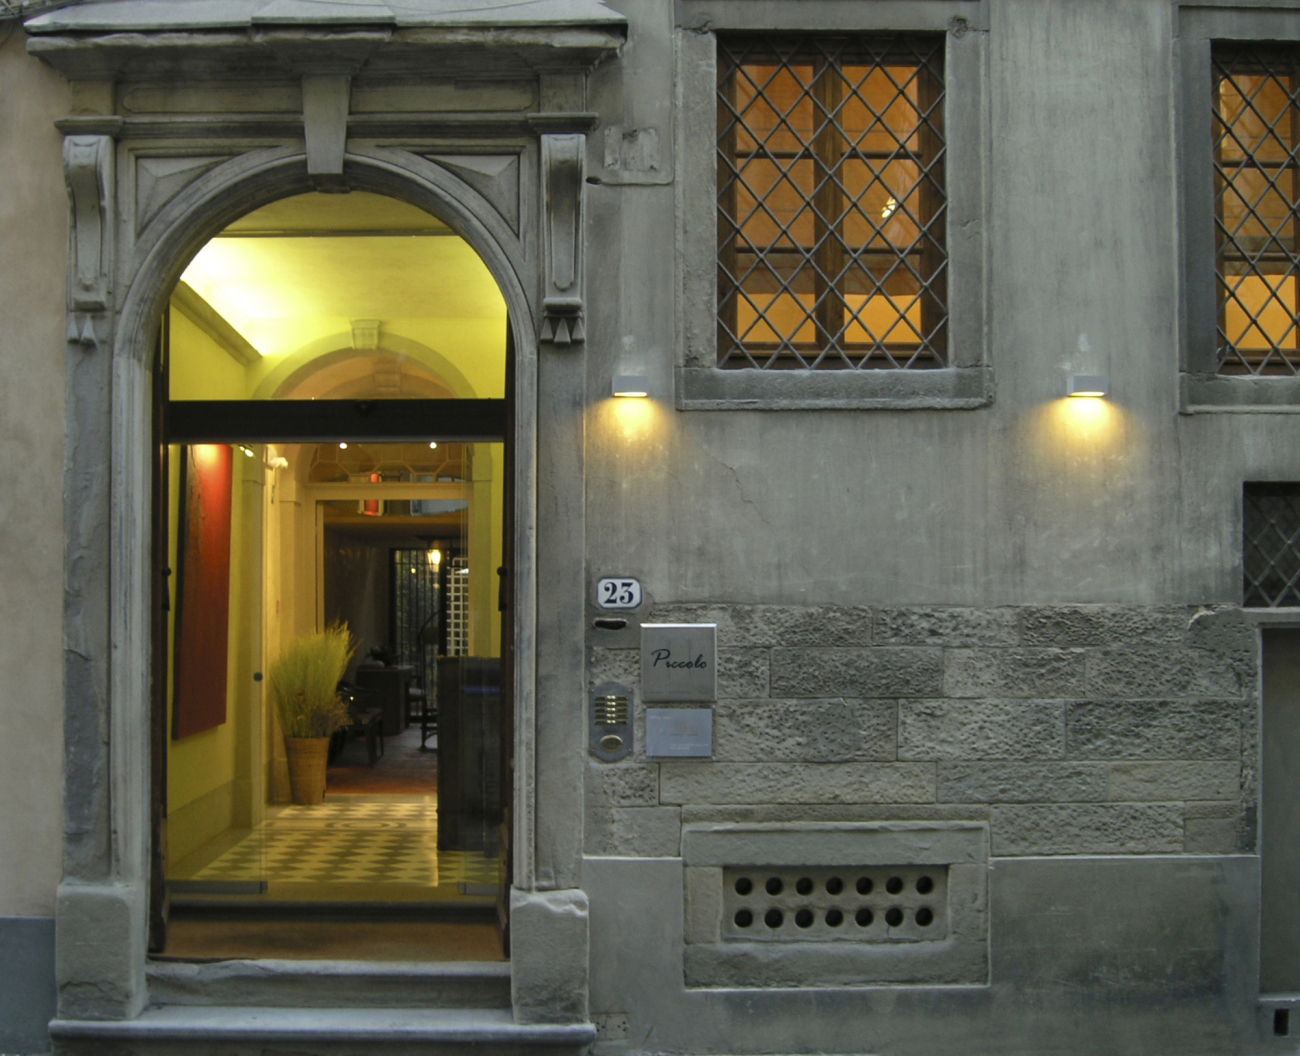 Rental apartments: Piccolo apart residence in Florence.